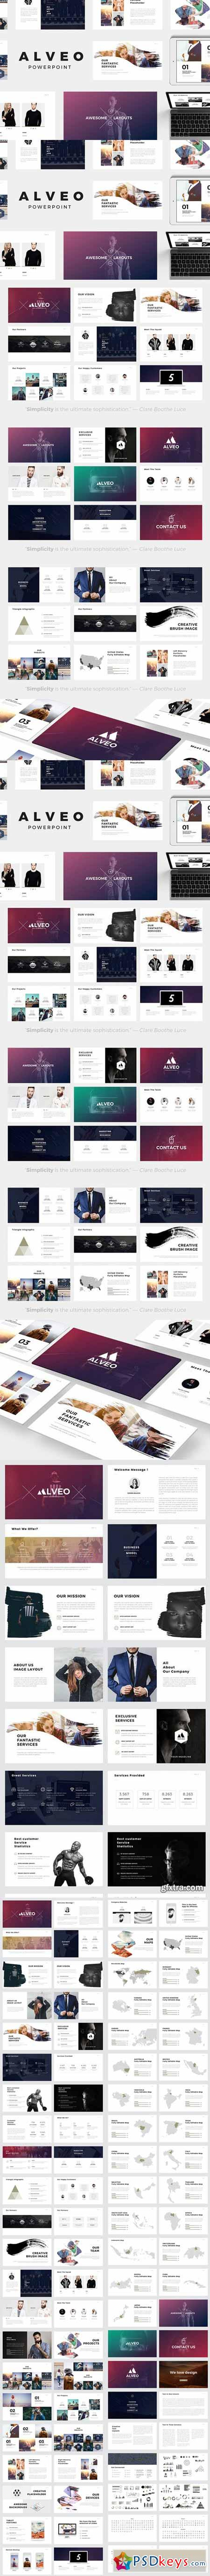 Alveo minimal powerpoint template 602845 free download photoshop alveo minimal powerpoint template 602845 toneelgroepblik Images